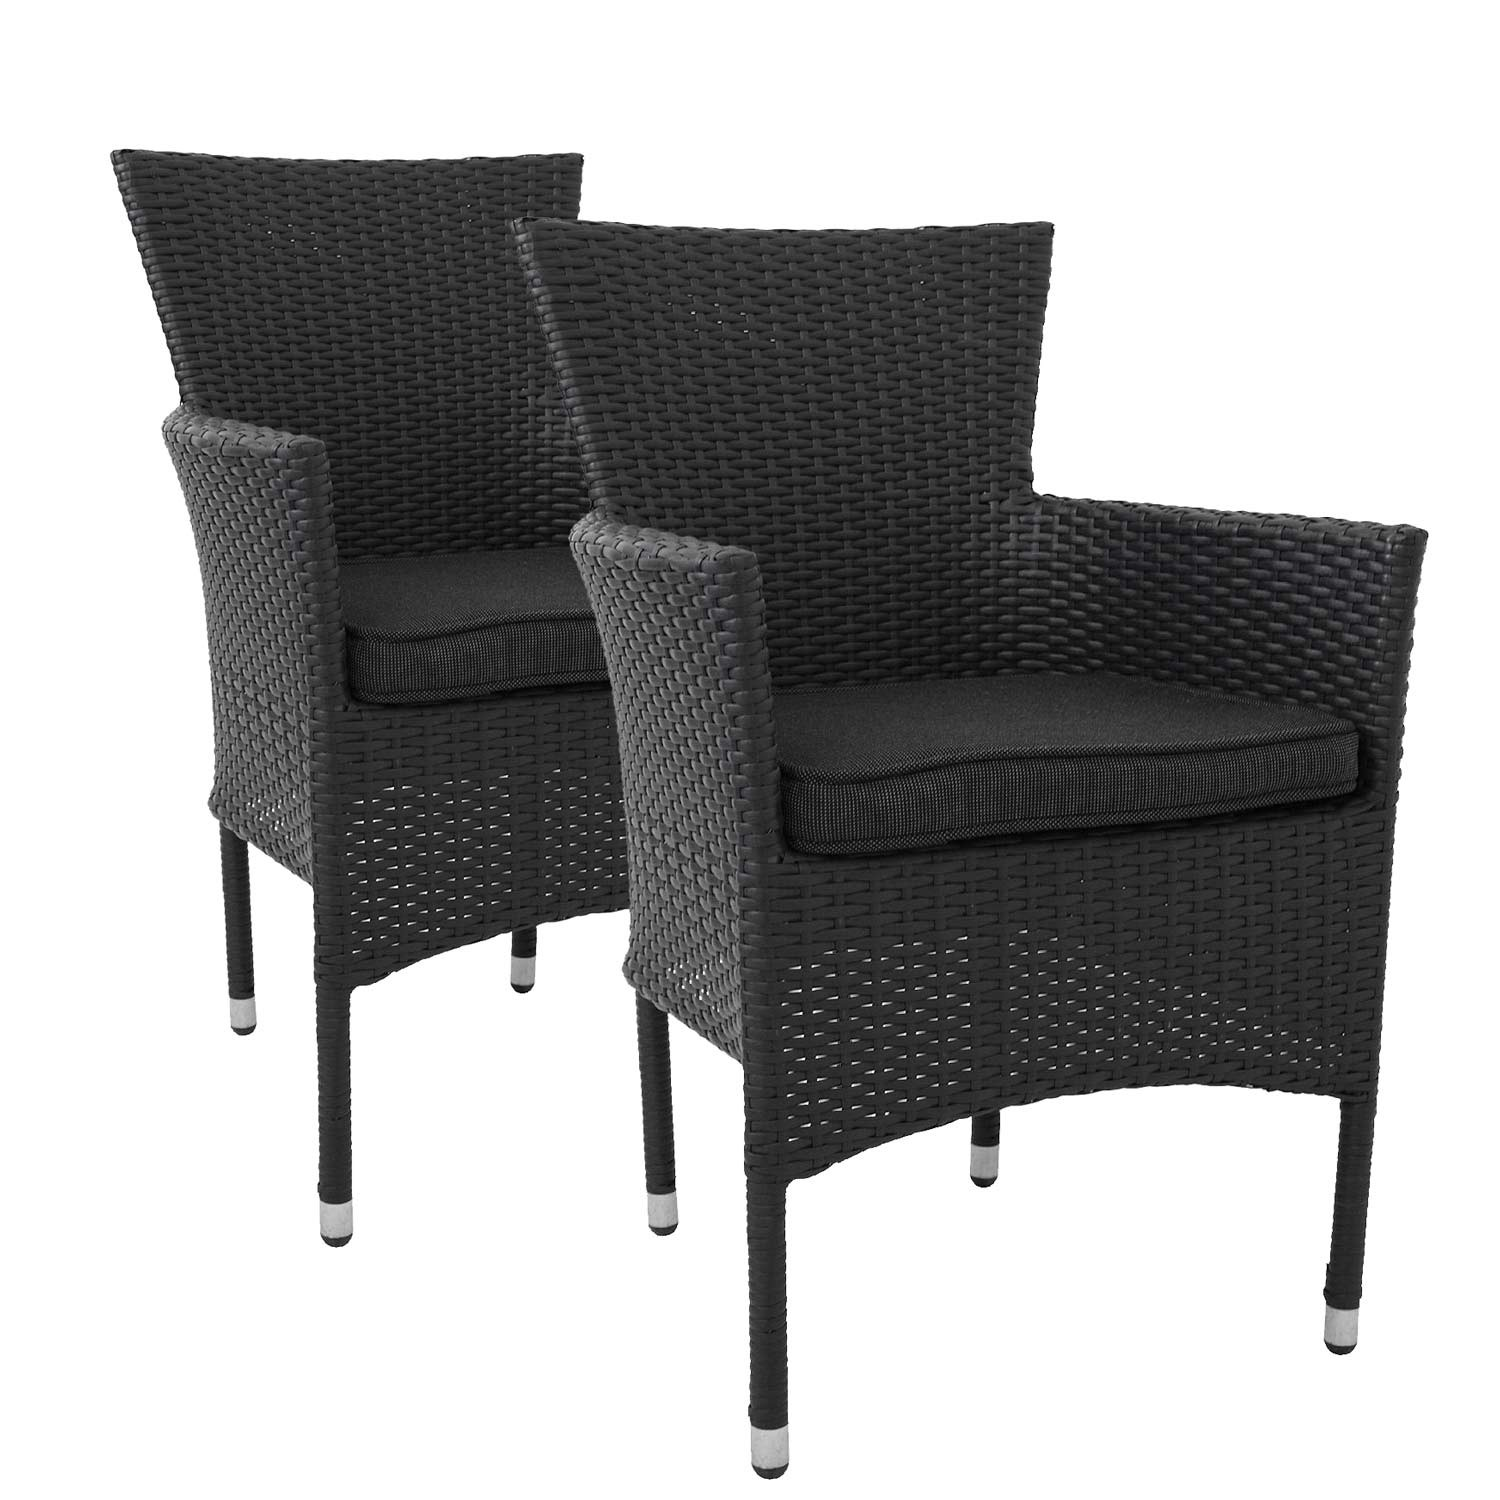 2 stk poly rattan sessel schwarz stapelbar kissen schwarz. Black Bedroom Furniture Sets. Home Design Ideas